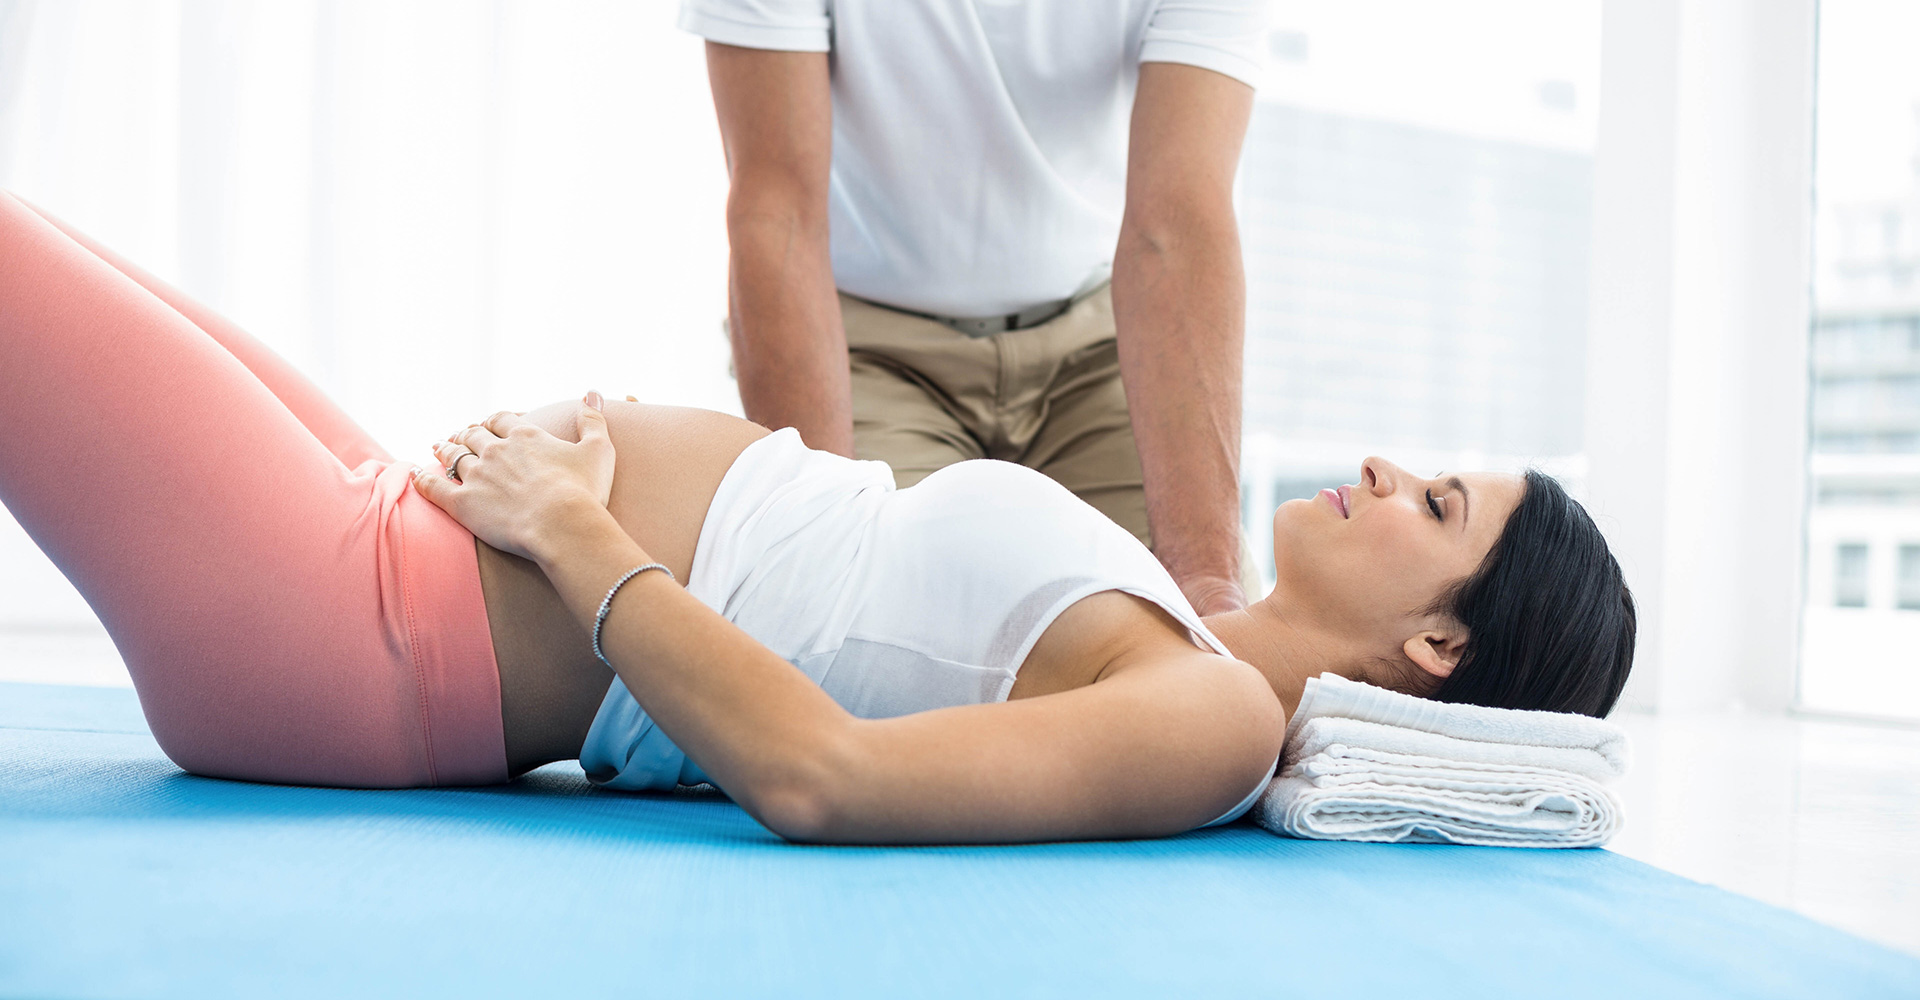 Chiropractor adjusting a pregnant woman's spine